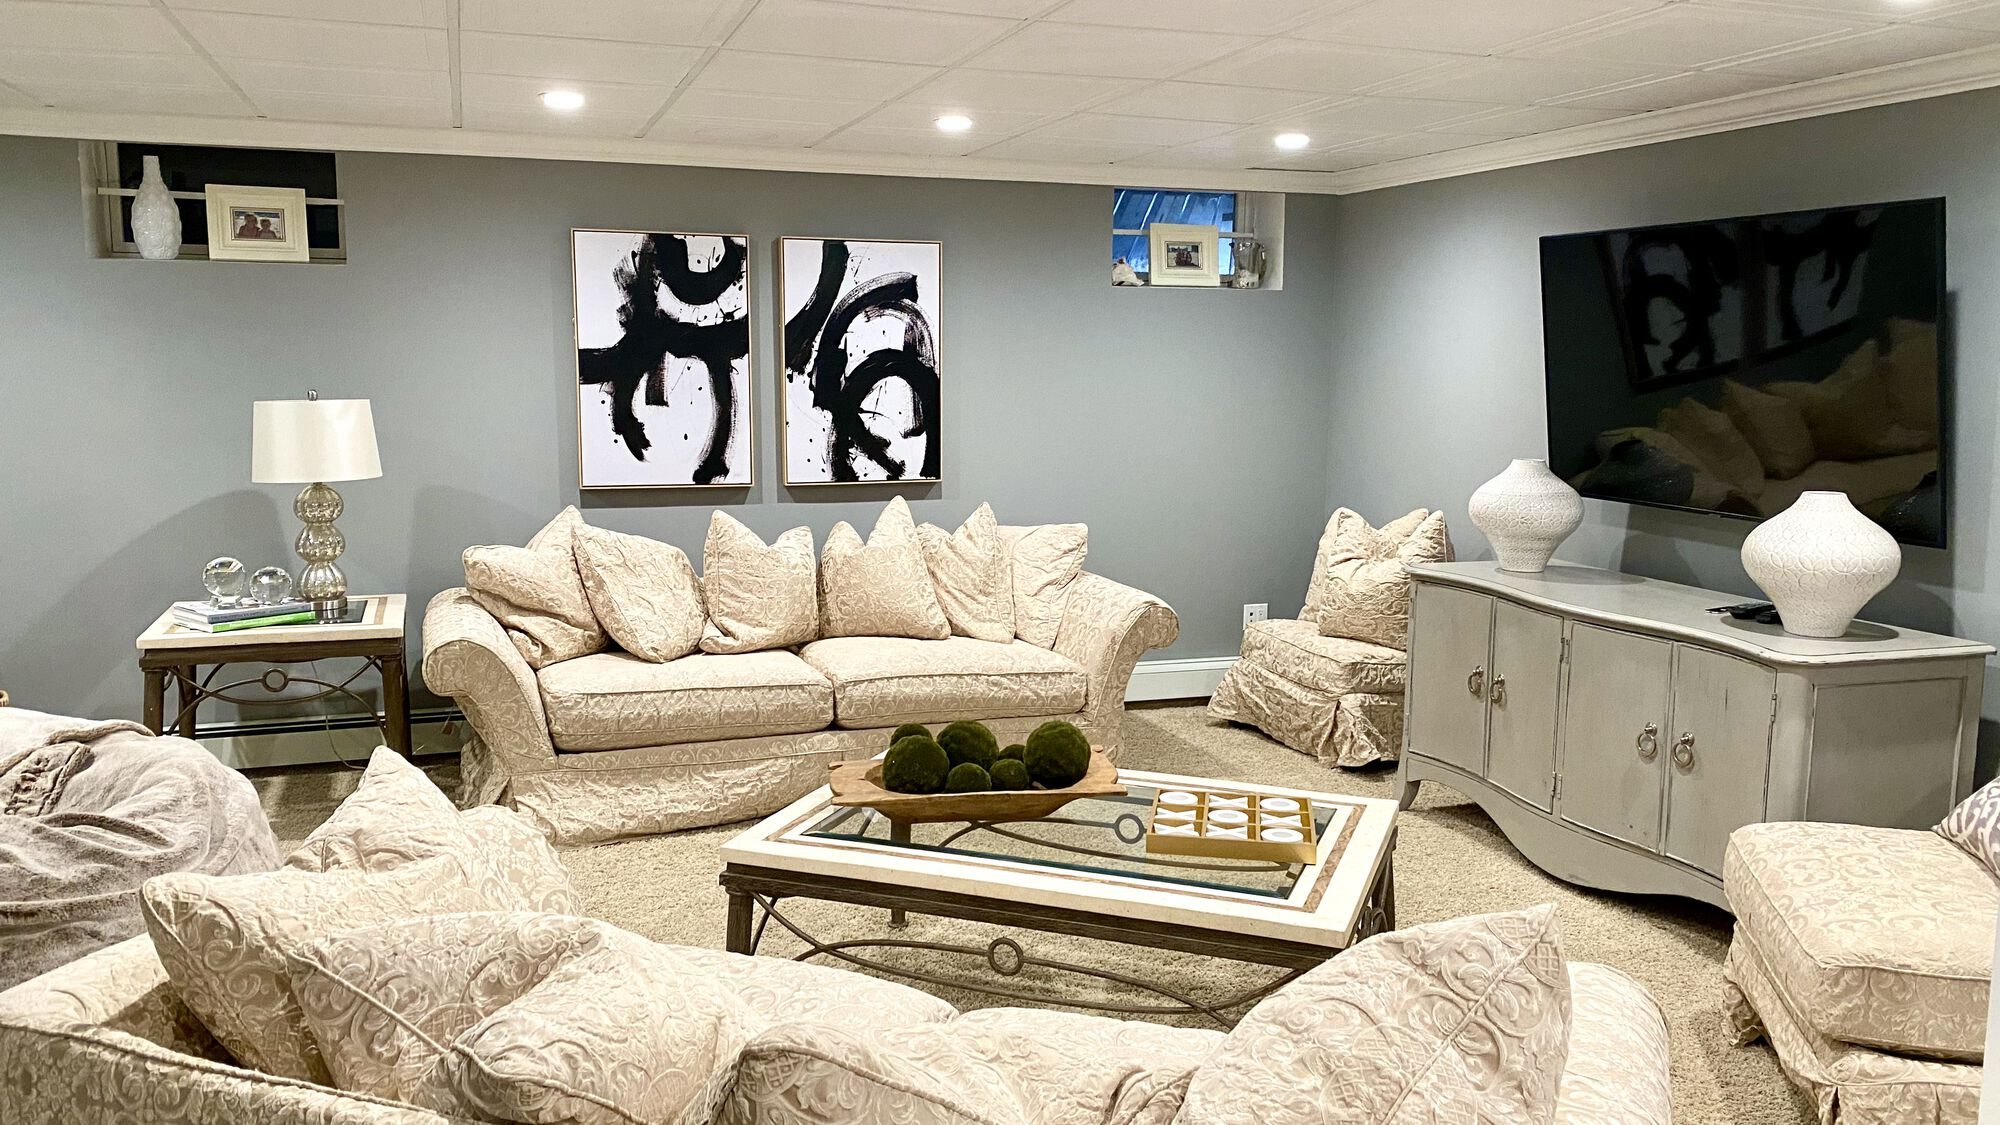 Basement Remodeling with Carpet Flooring in Sussex County NJ